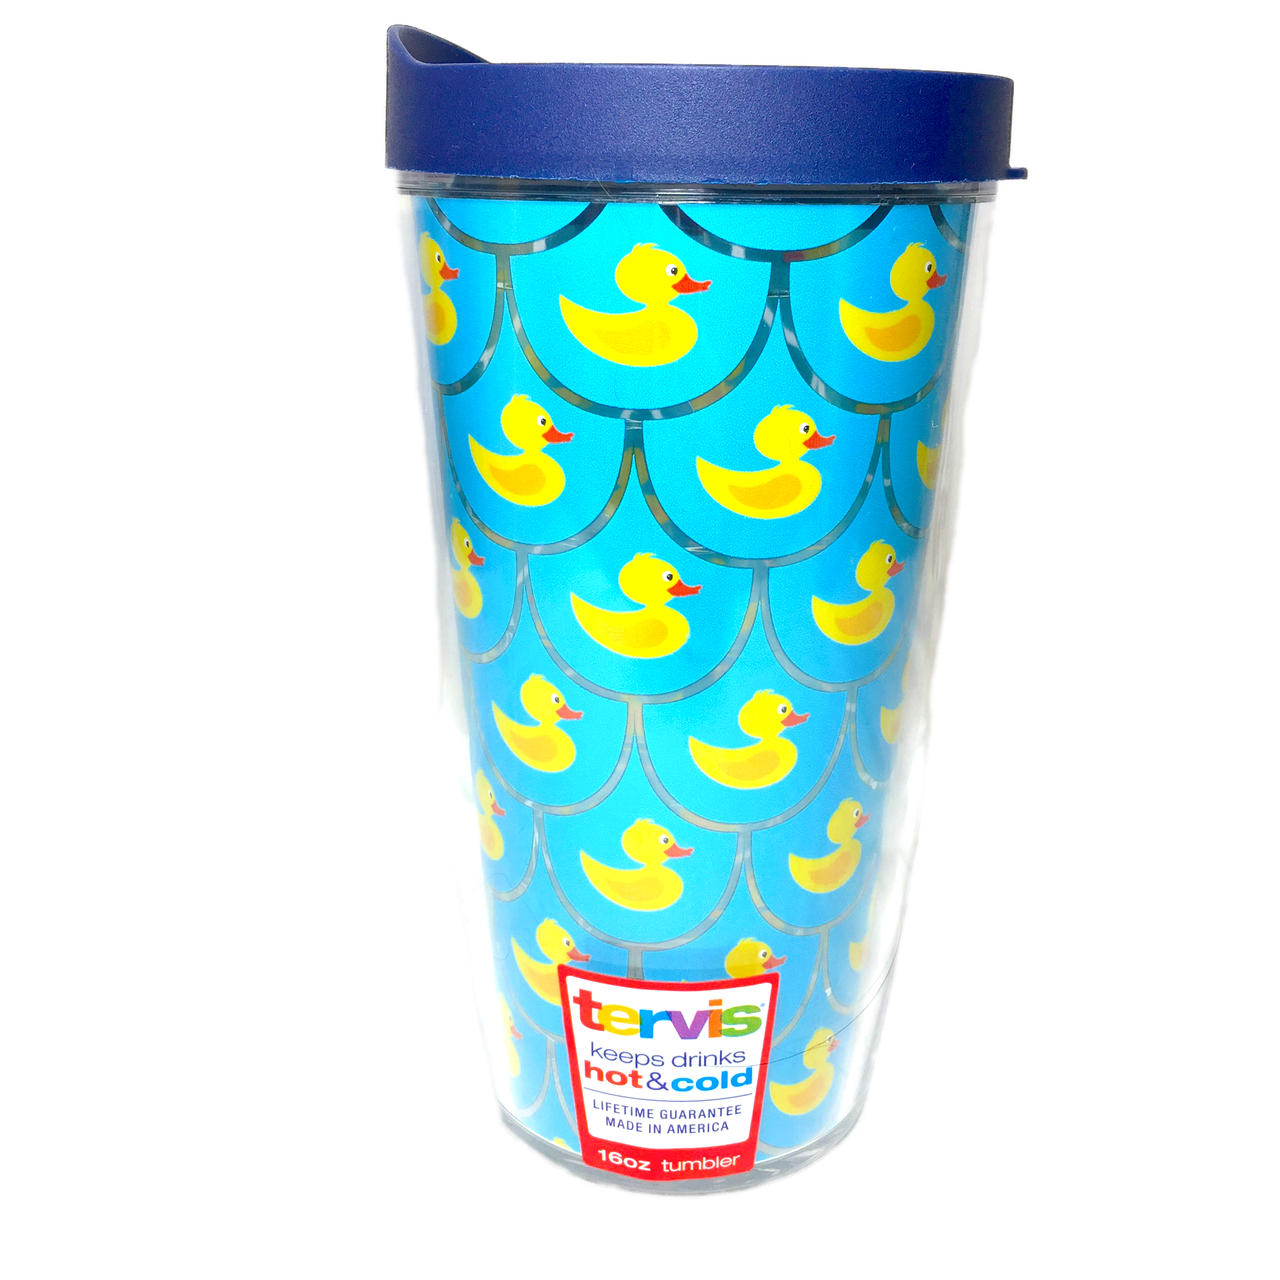 Chatham Ducks Brand Scalloped Rubber Duck Pattern Tervis Insulated Tumbler With Lid In The Window